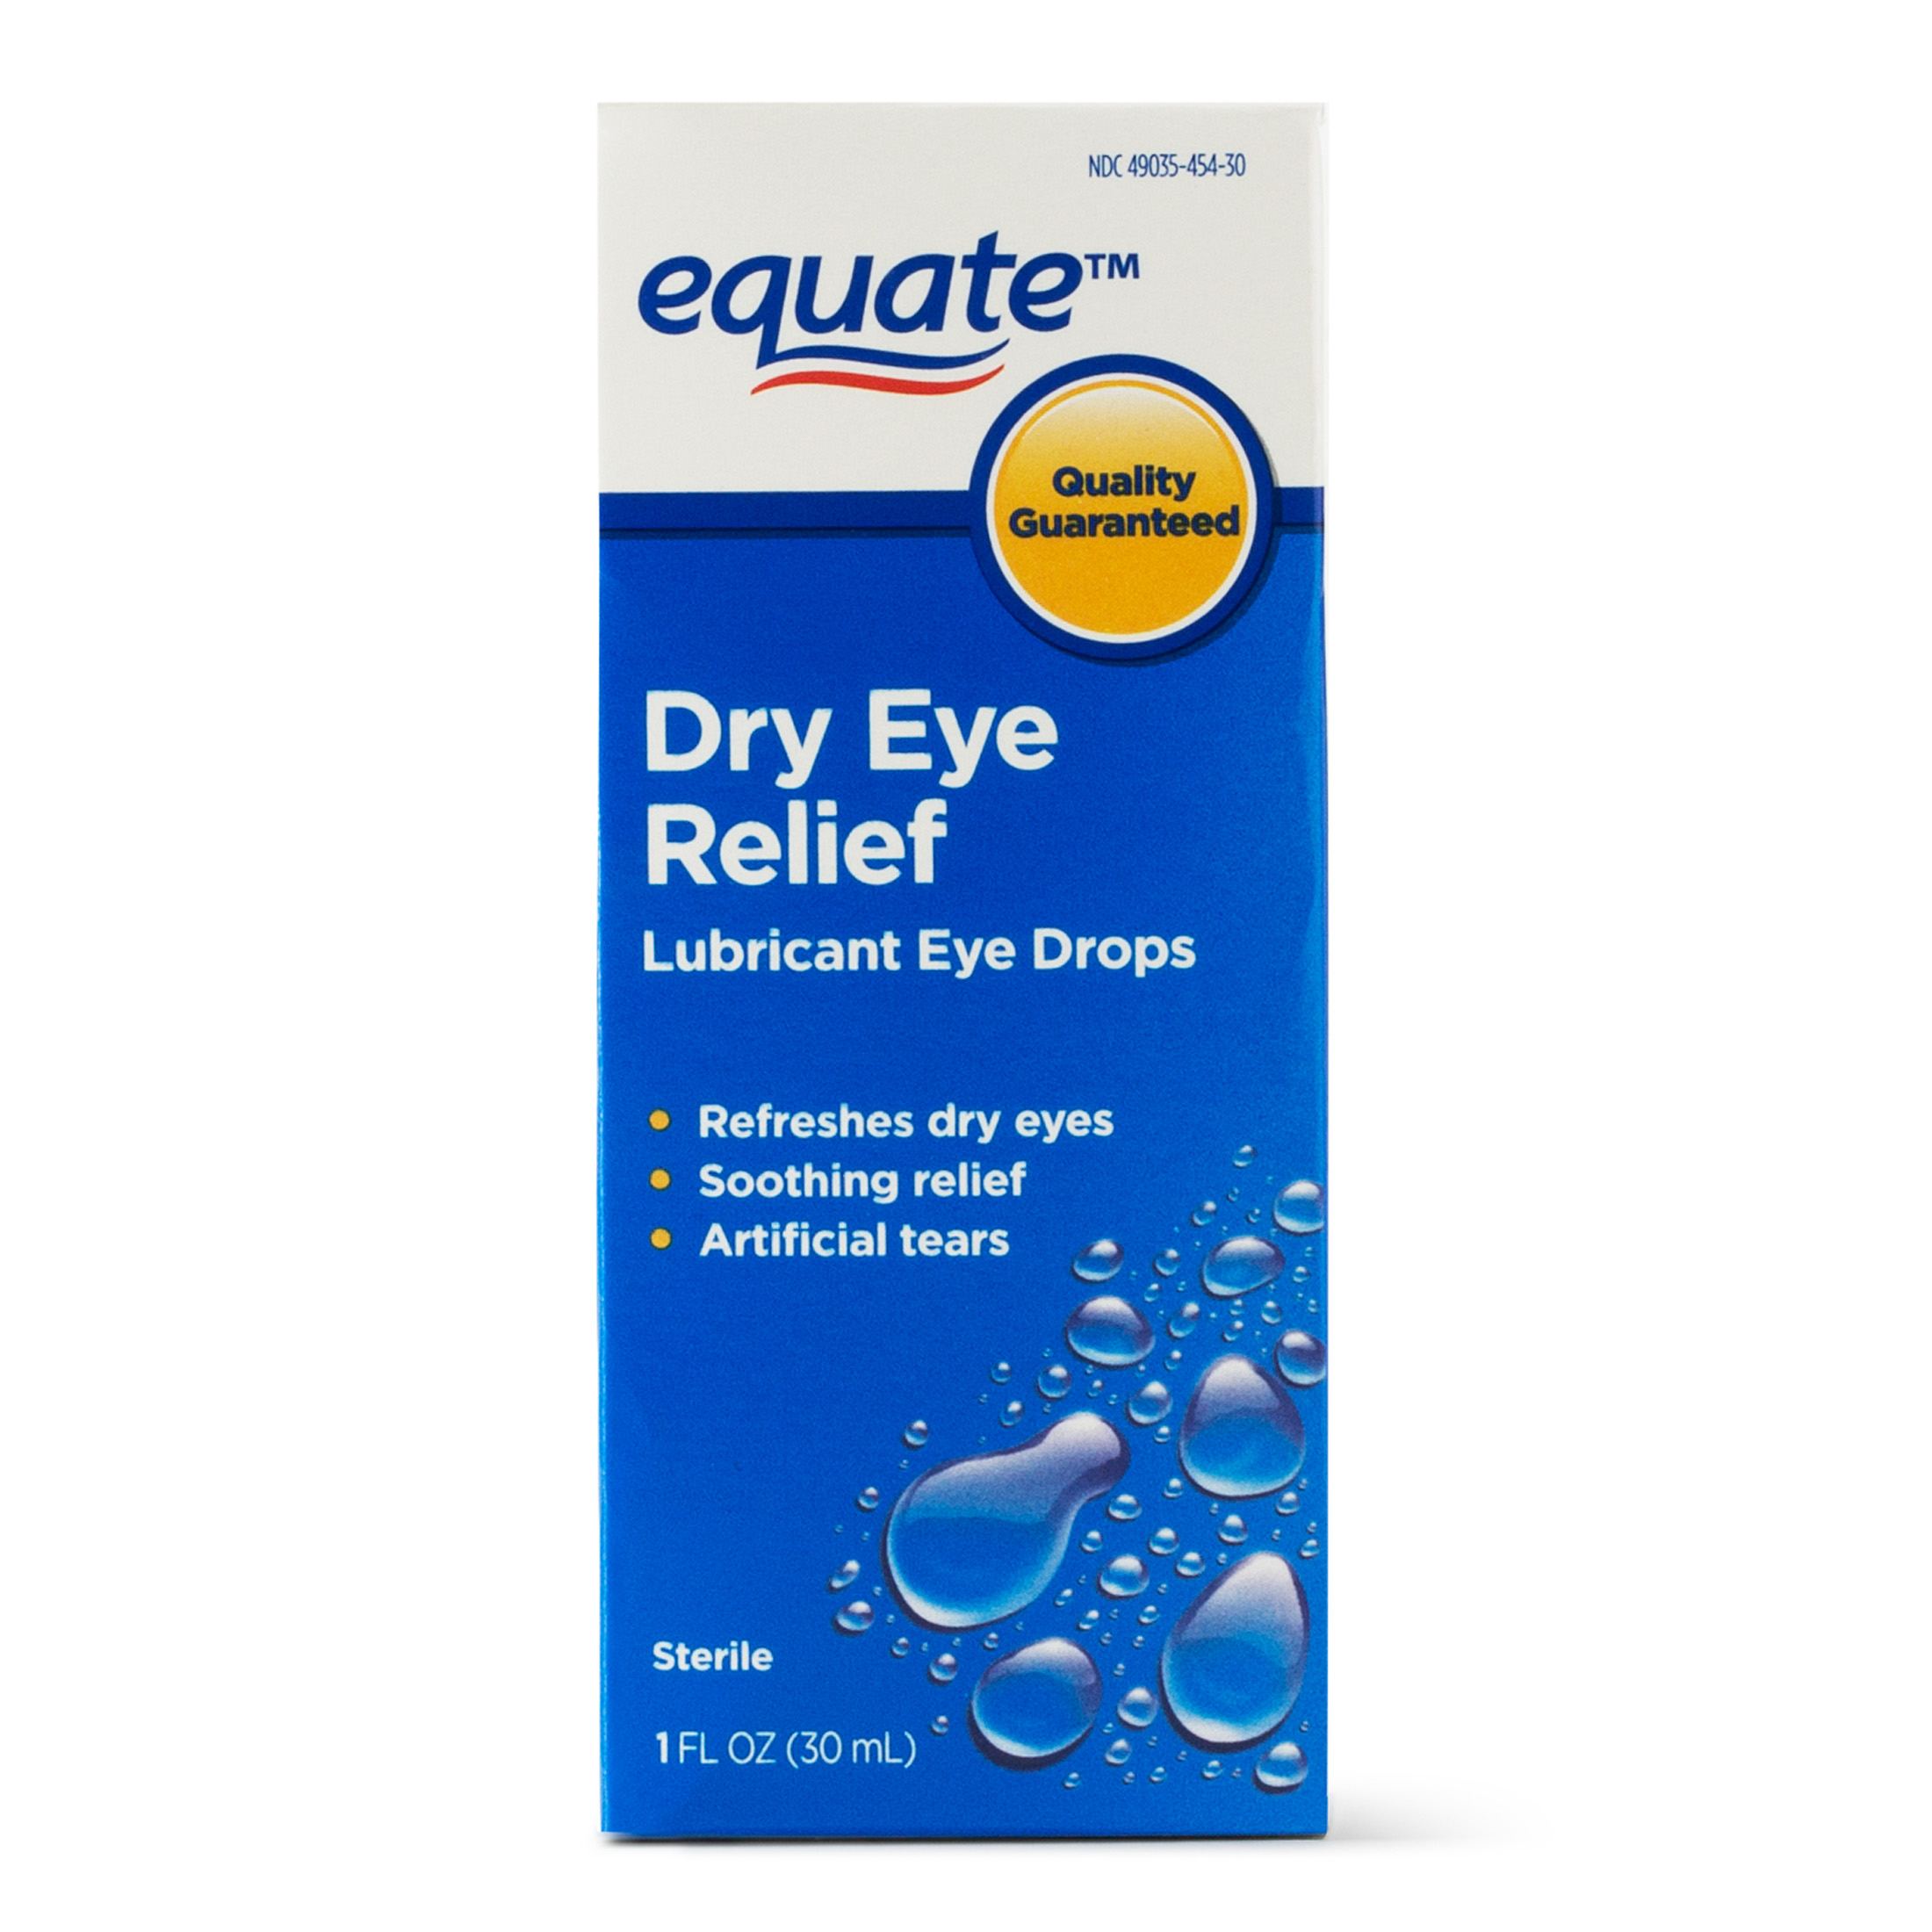 Equate Dry Eye Relief Lubricant Eye Drops Liquid, 1 Oz - Walmart.com | Tuggl